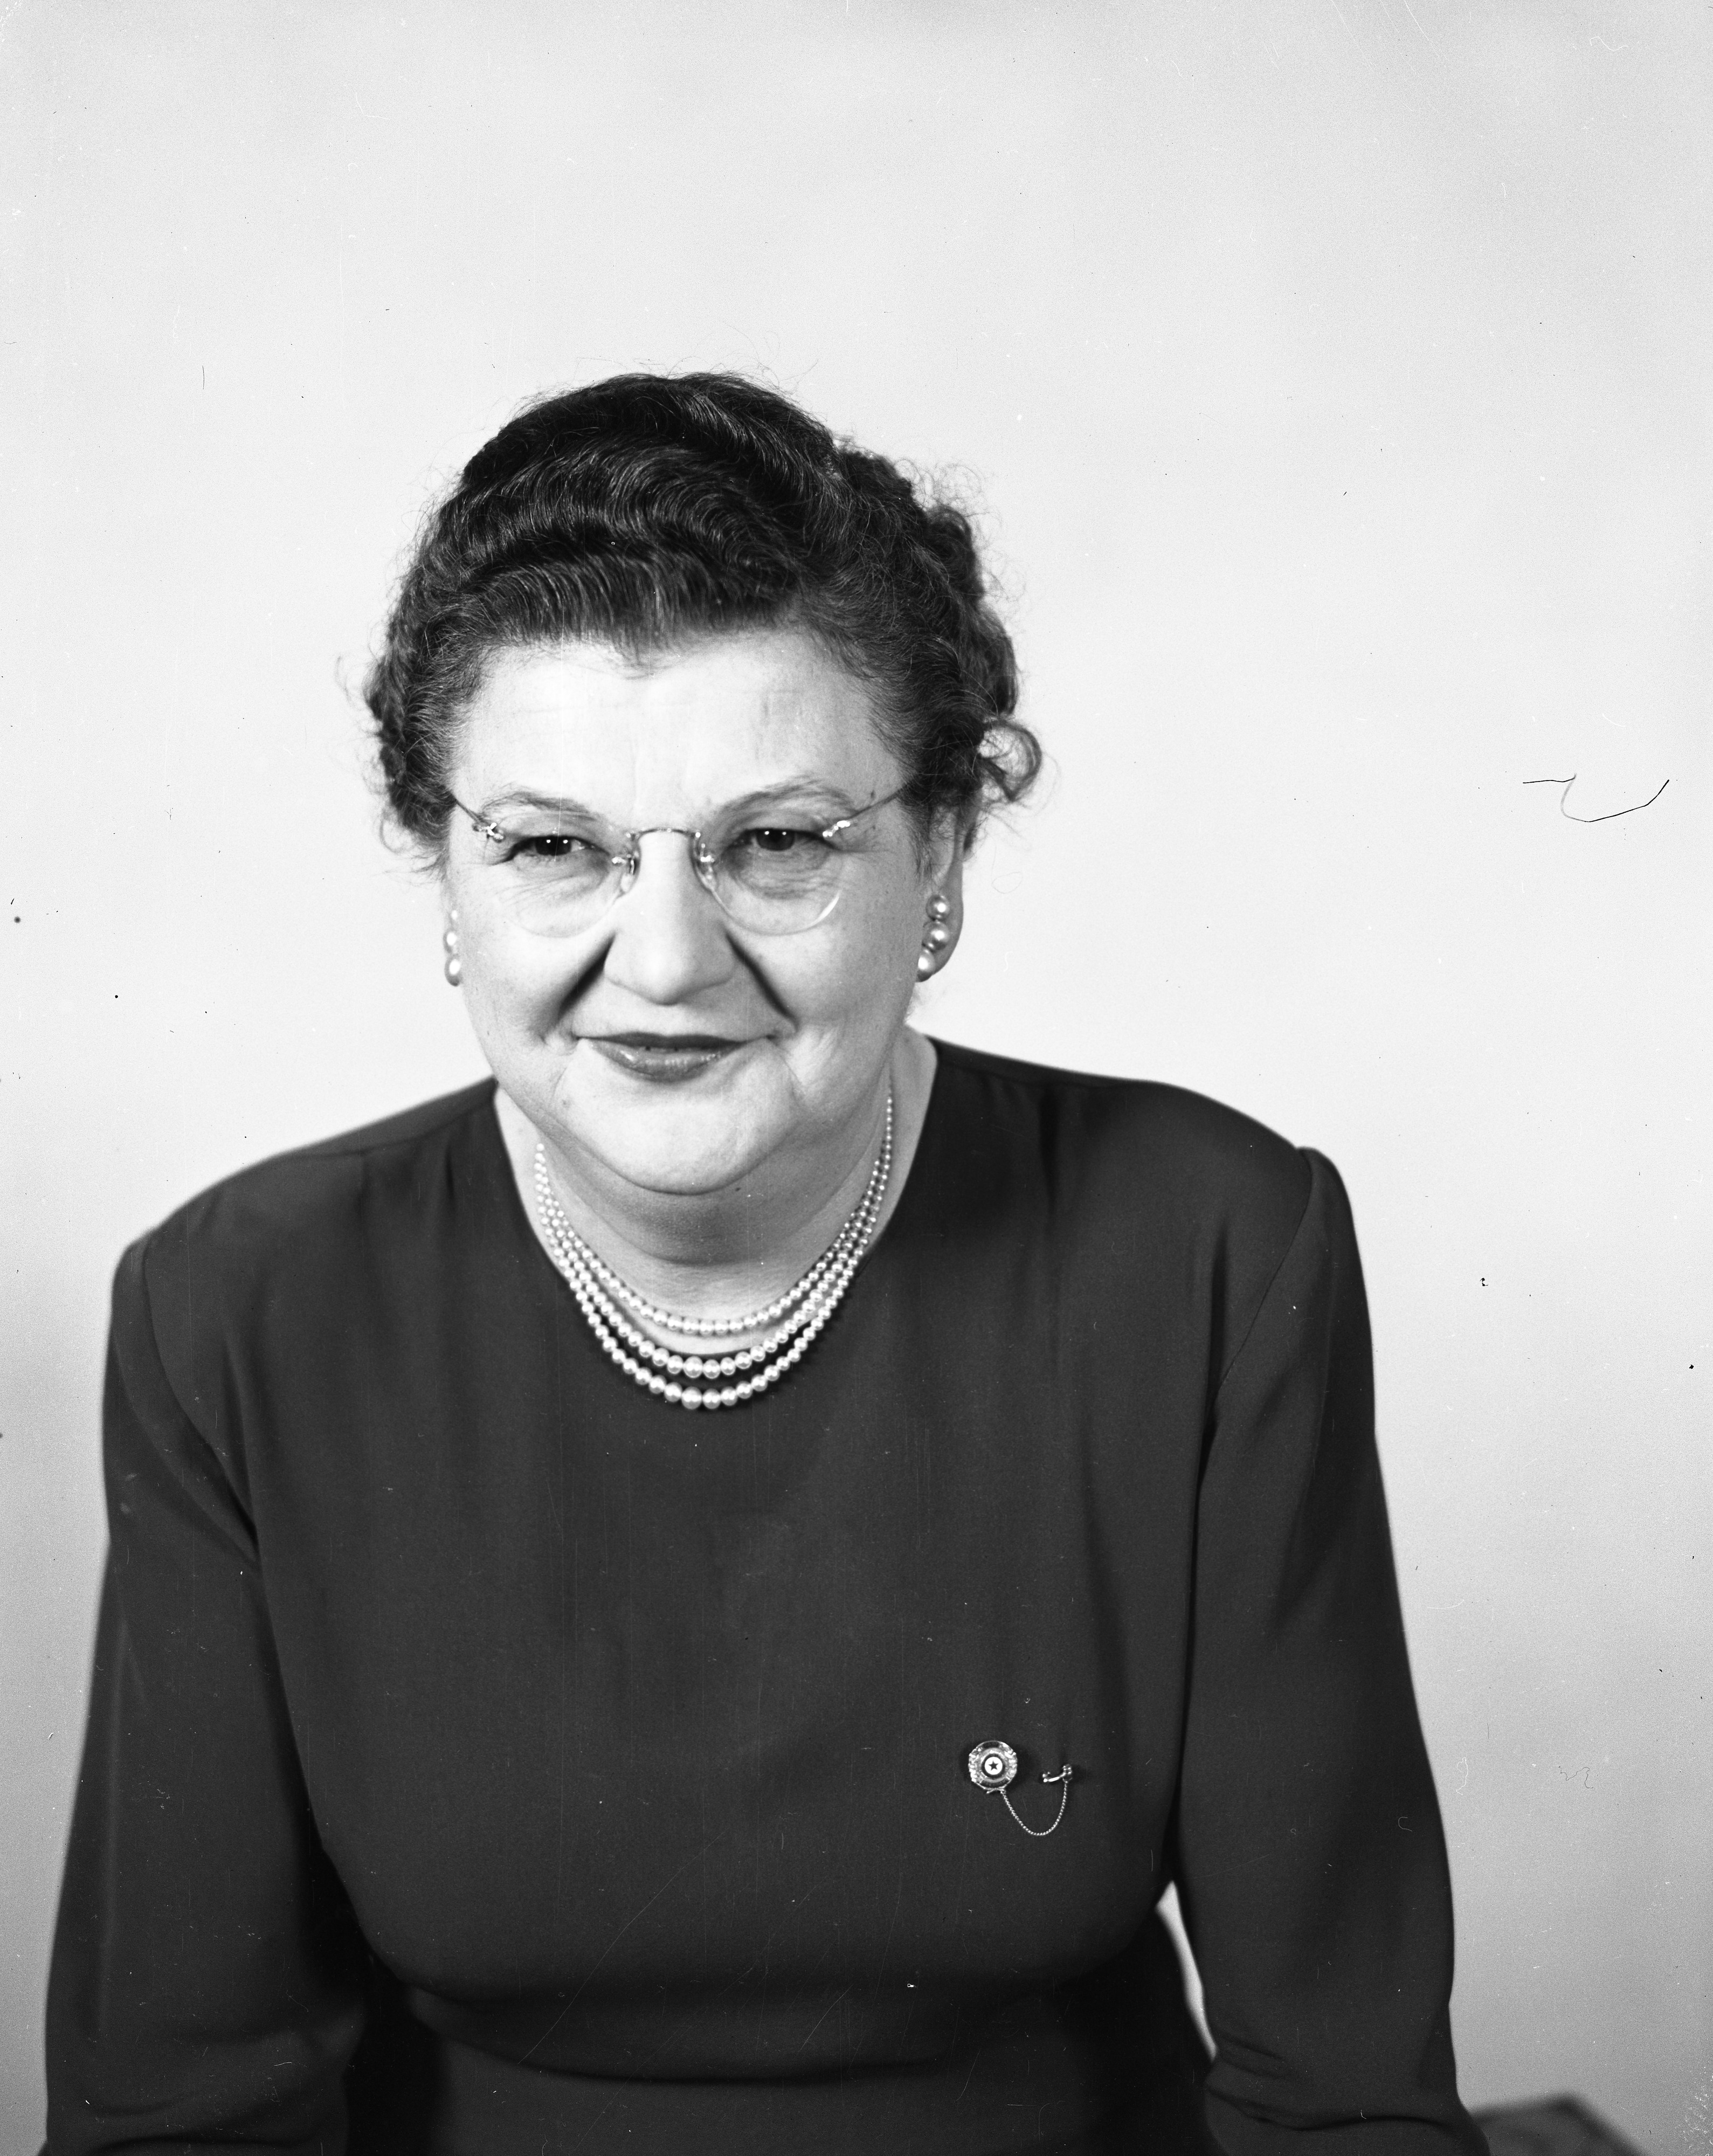 Gertrude Nickels, February 1950 image